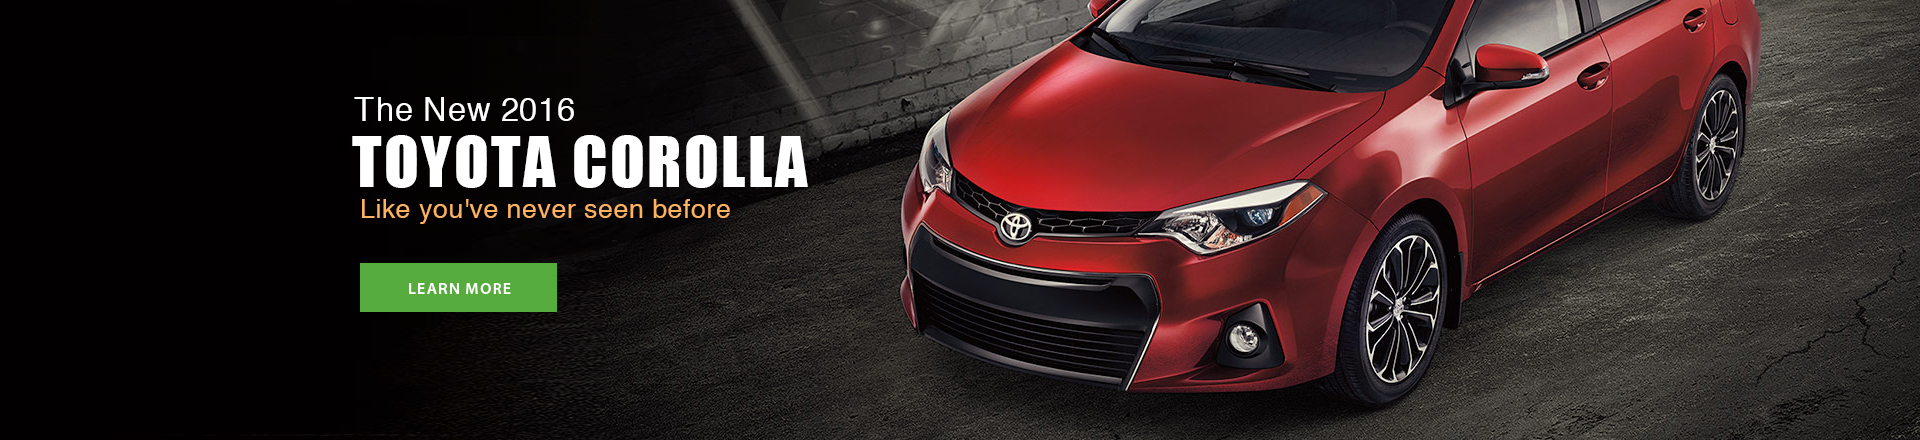 New 2016 Toyota Corolla - Learn More